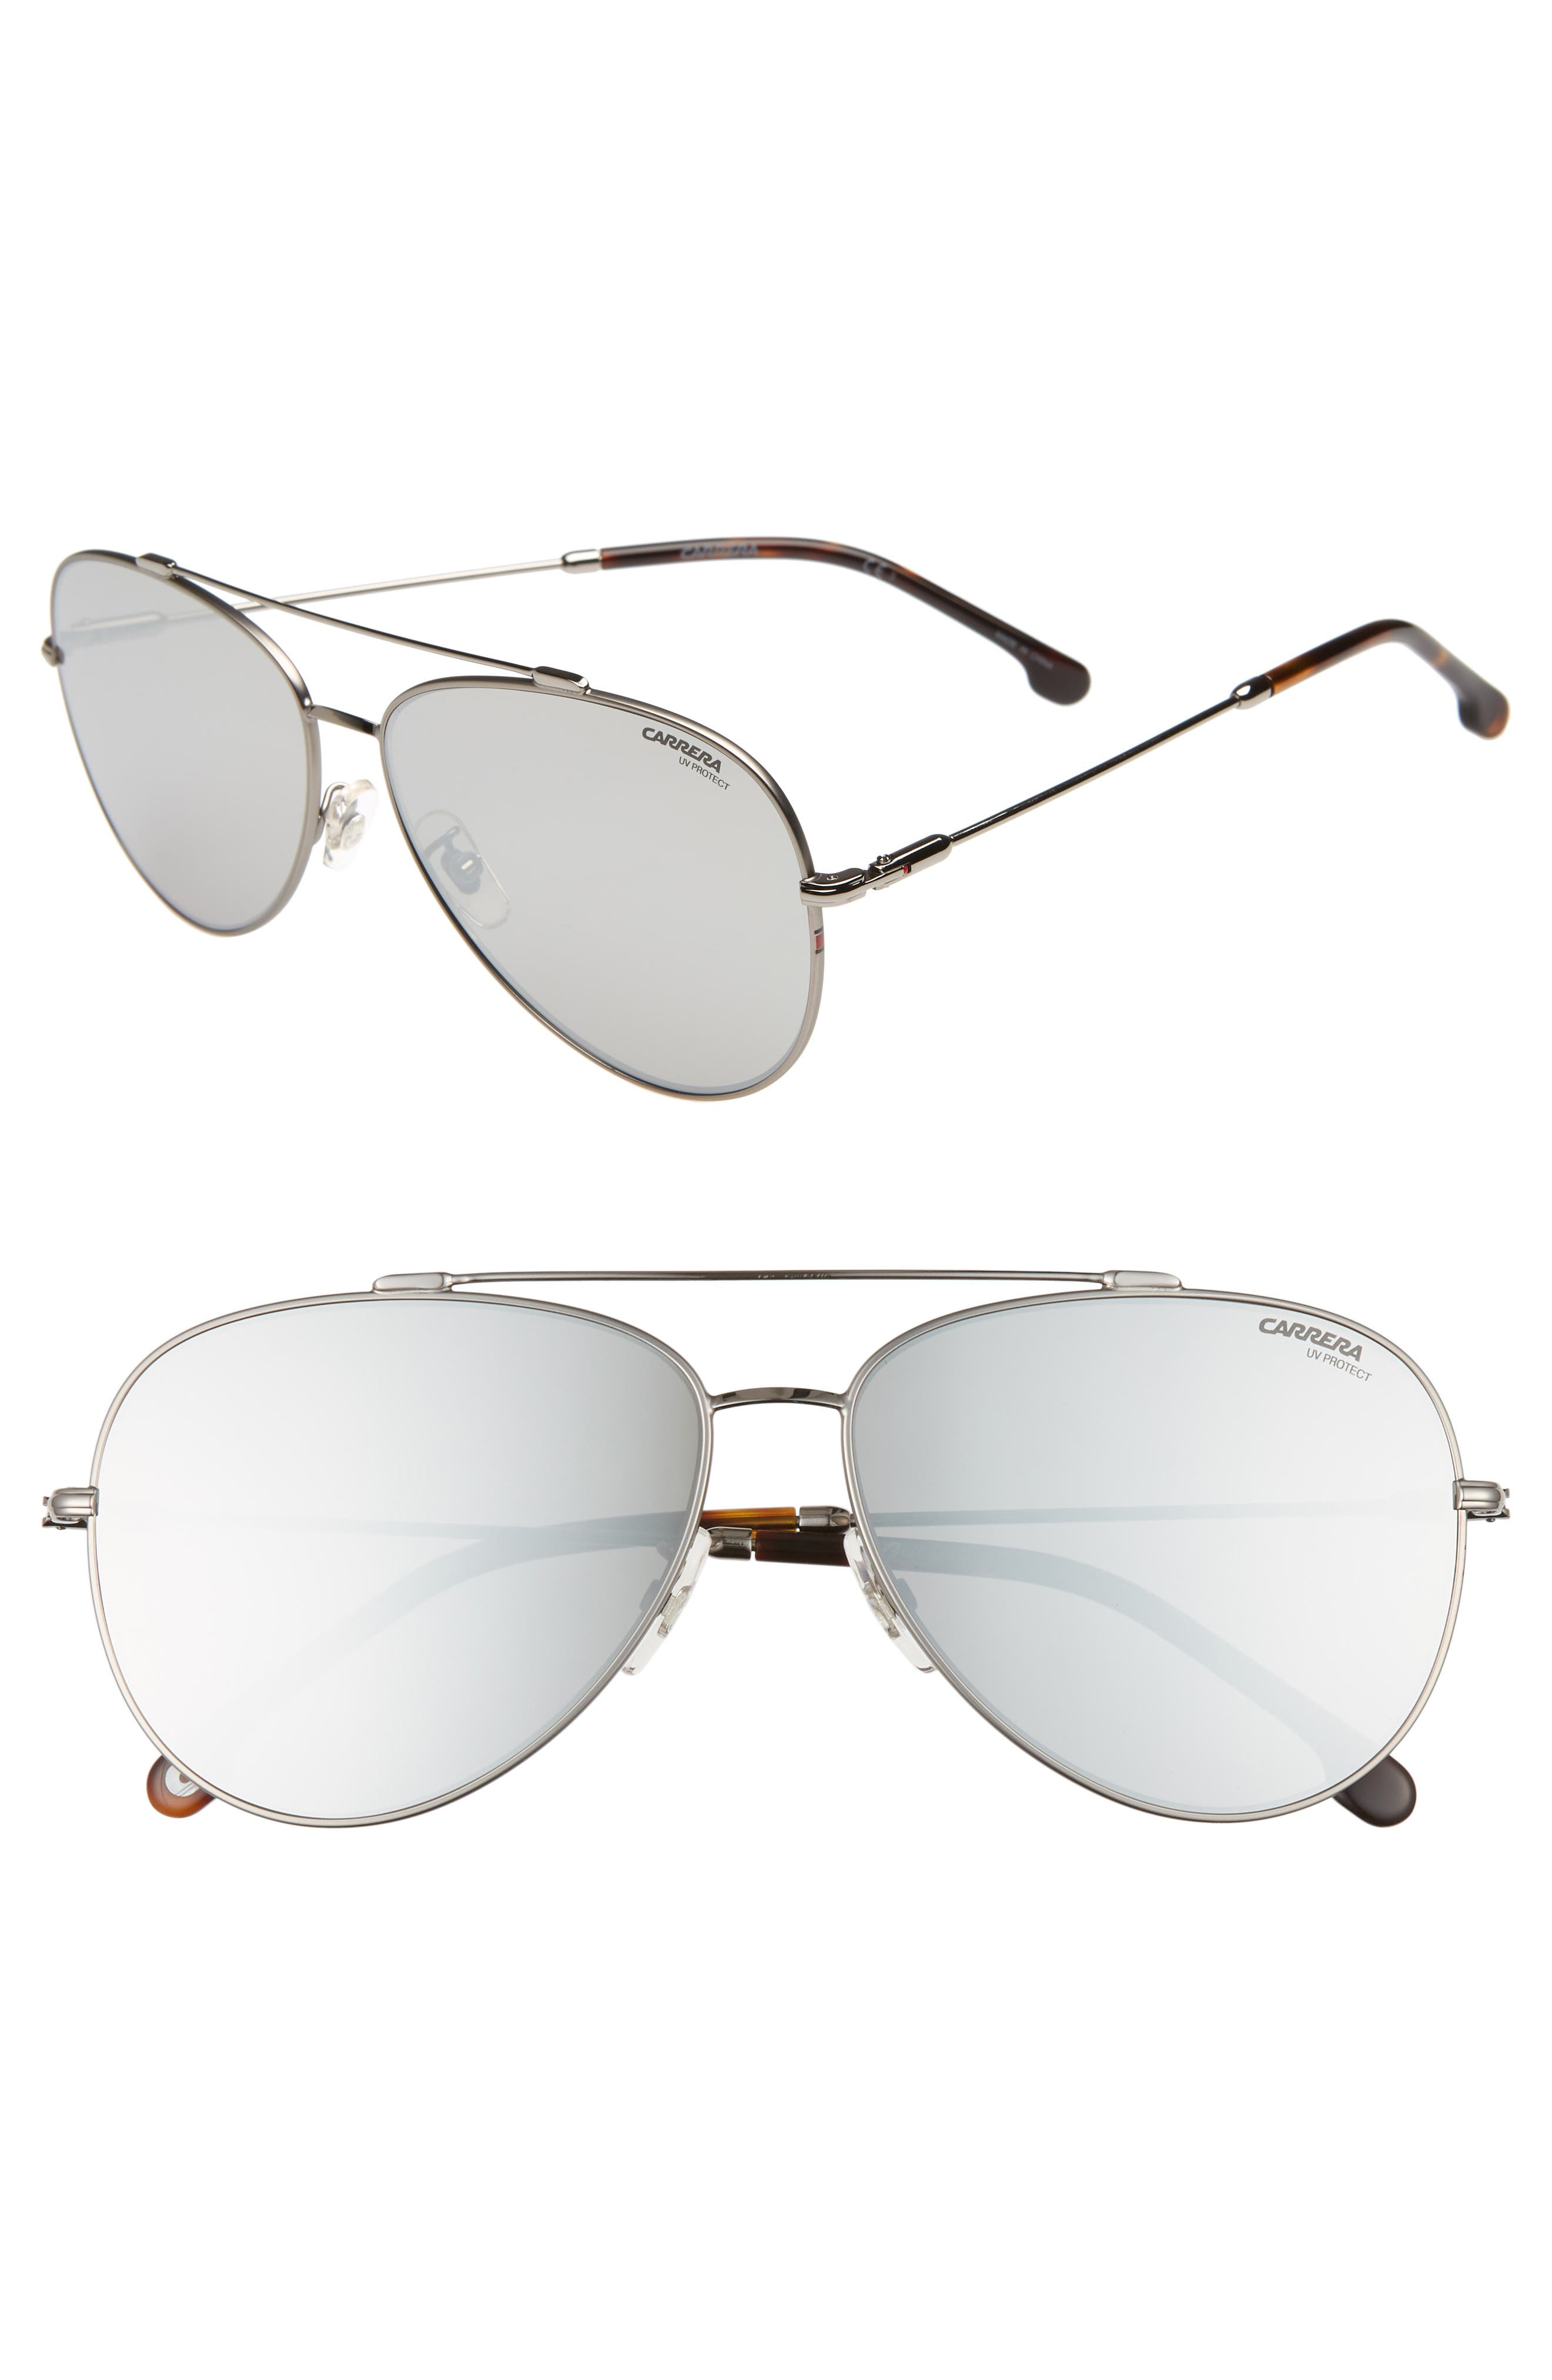 62mm Aviator Sunglasses,                             Main thumbnail 1, color,                             RUTHENIUM